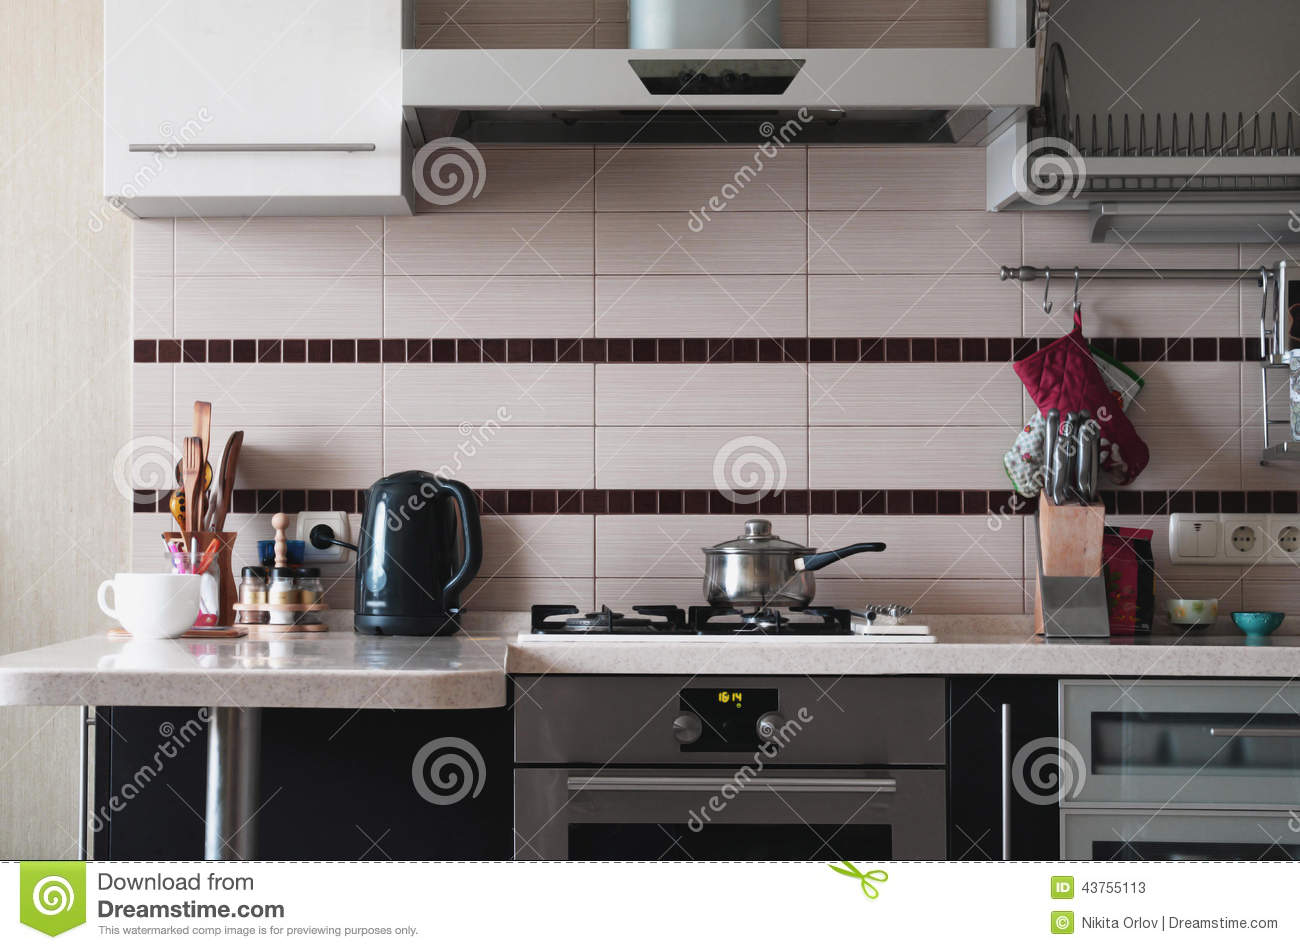 Kitchen stock image  Image of food, kitchen, electricity - 43755113